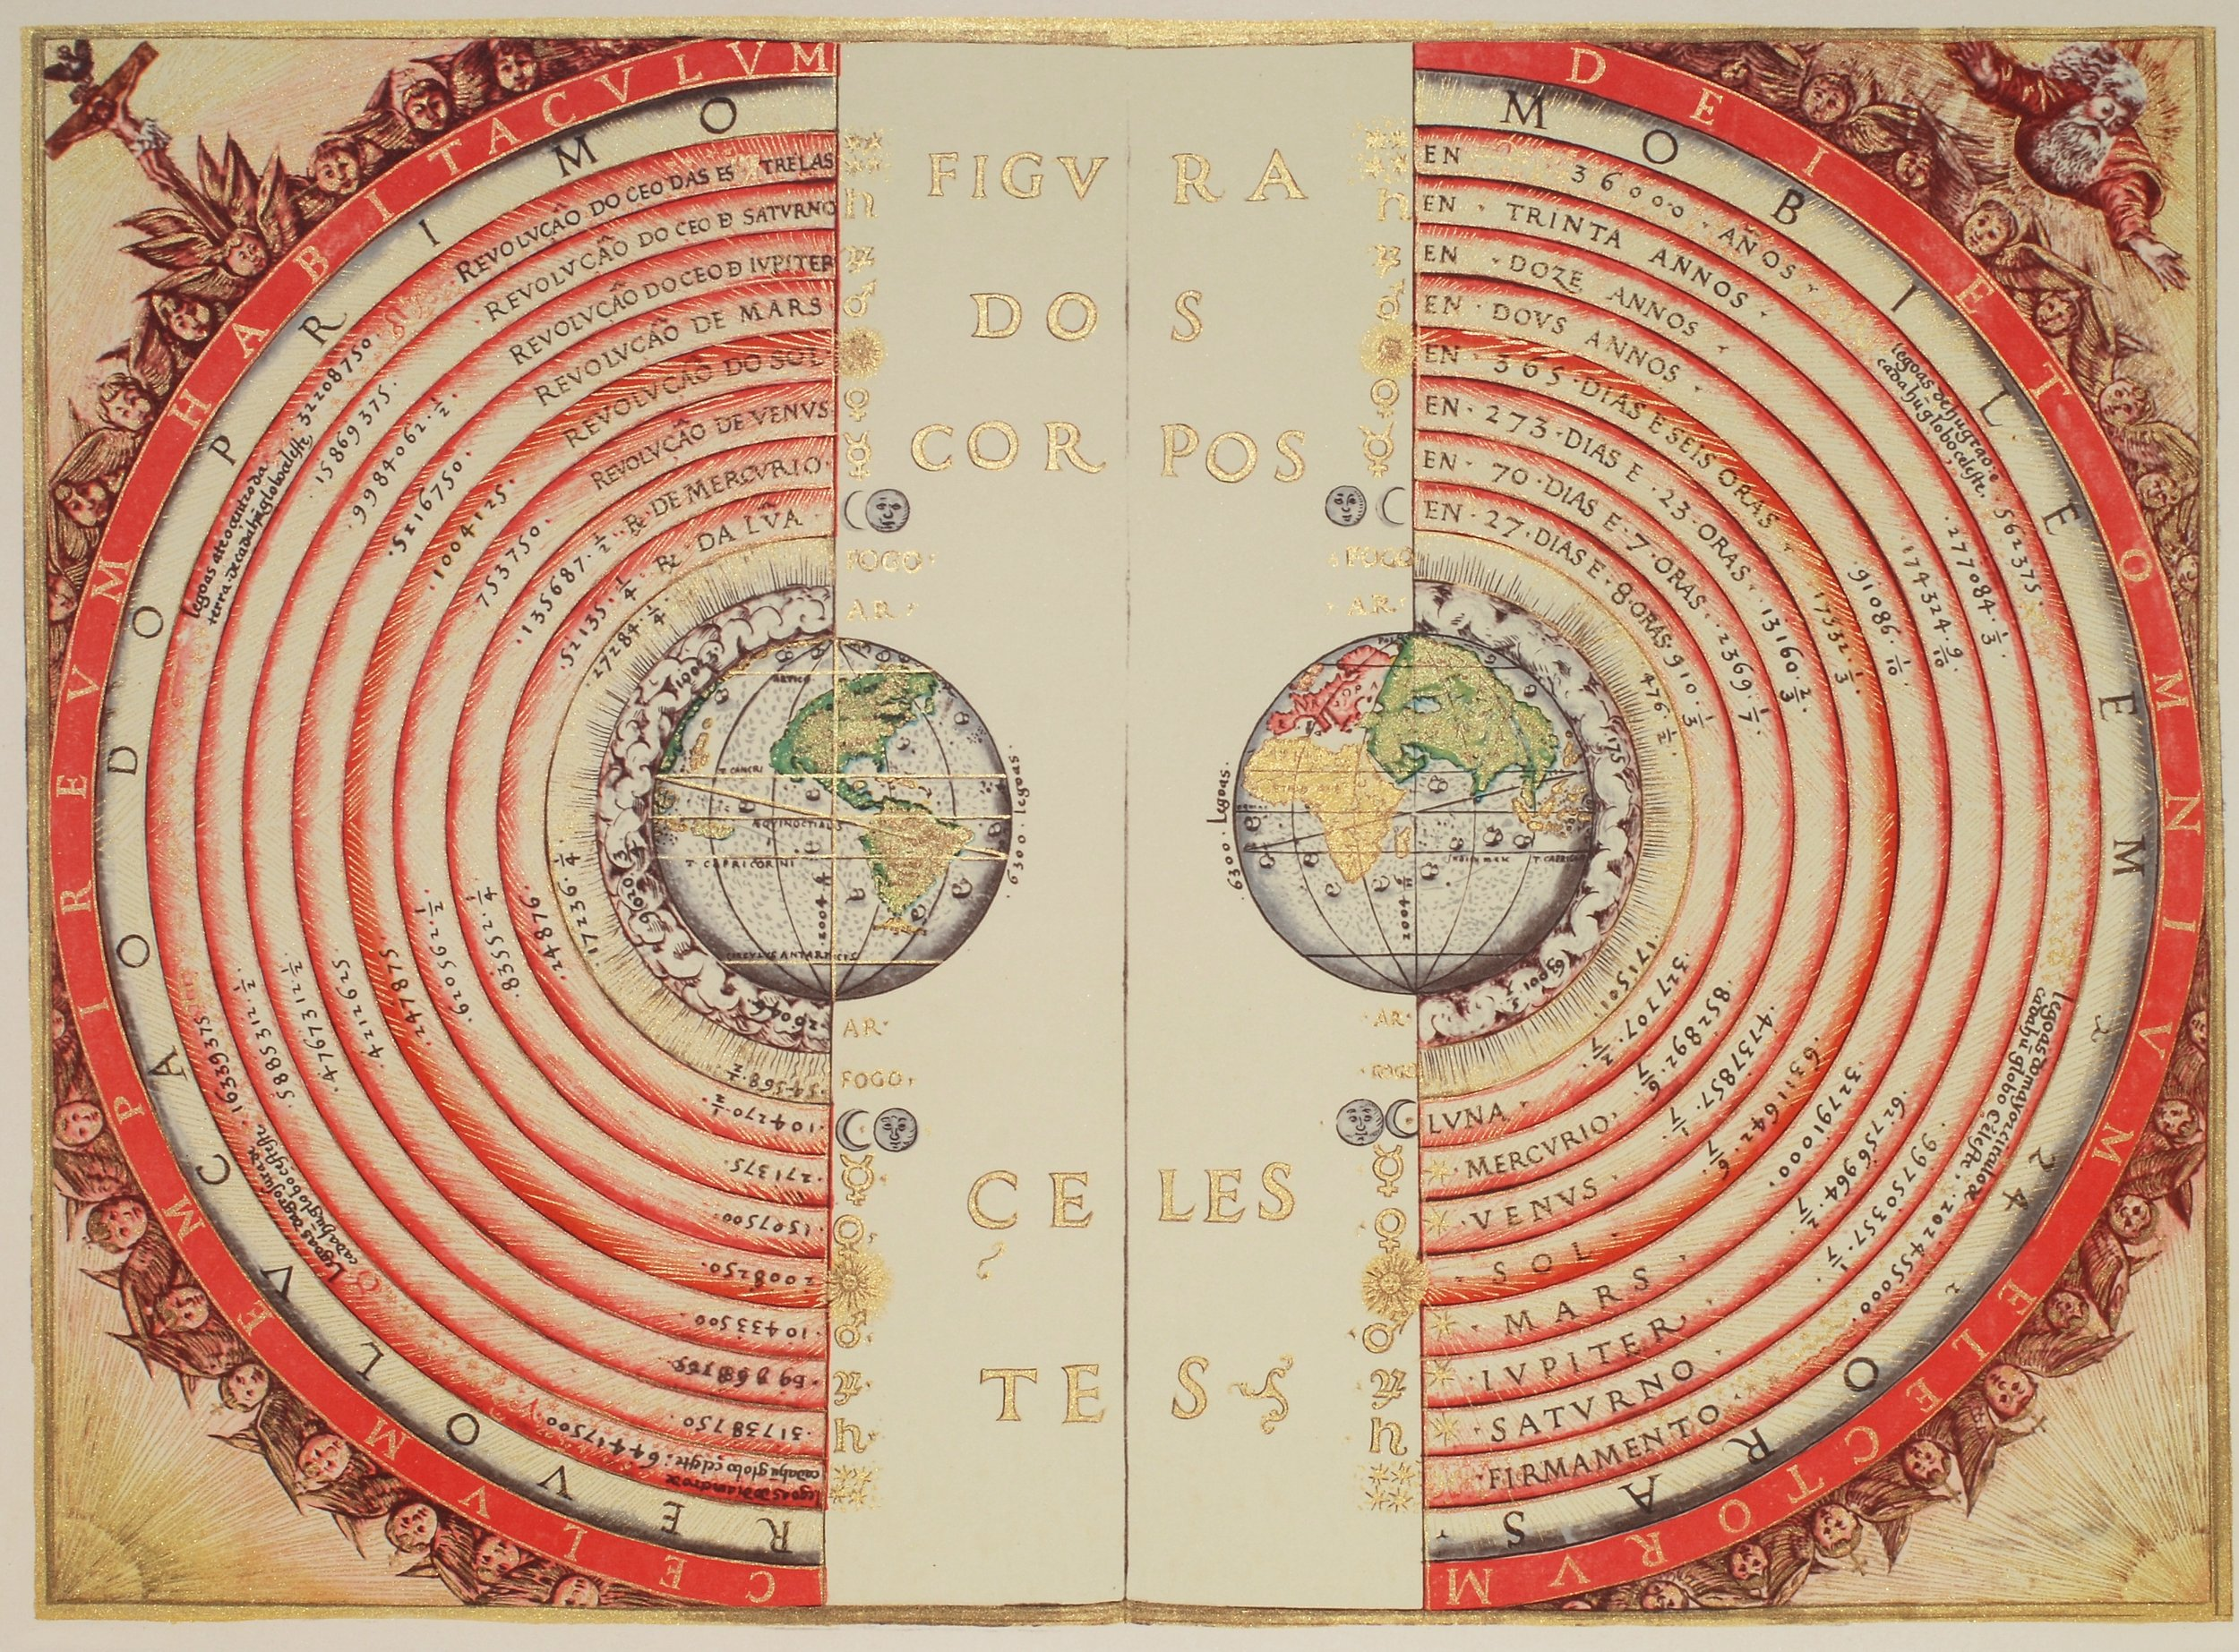 Illustration of the Ptolemaic Geocentric Model of the Universe by Bartolomeu Velho